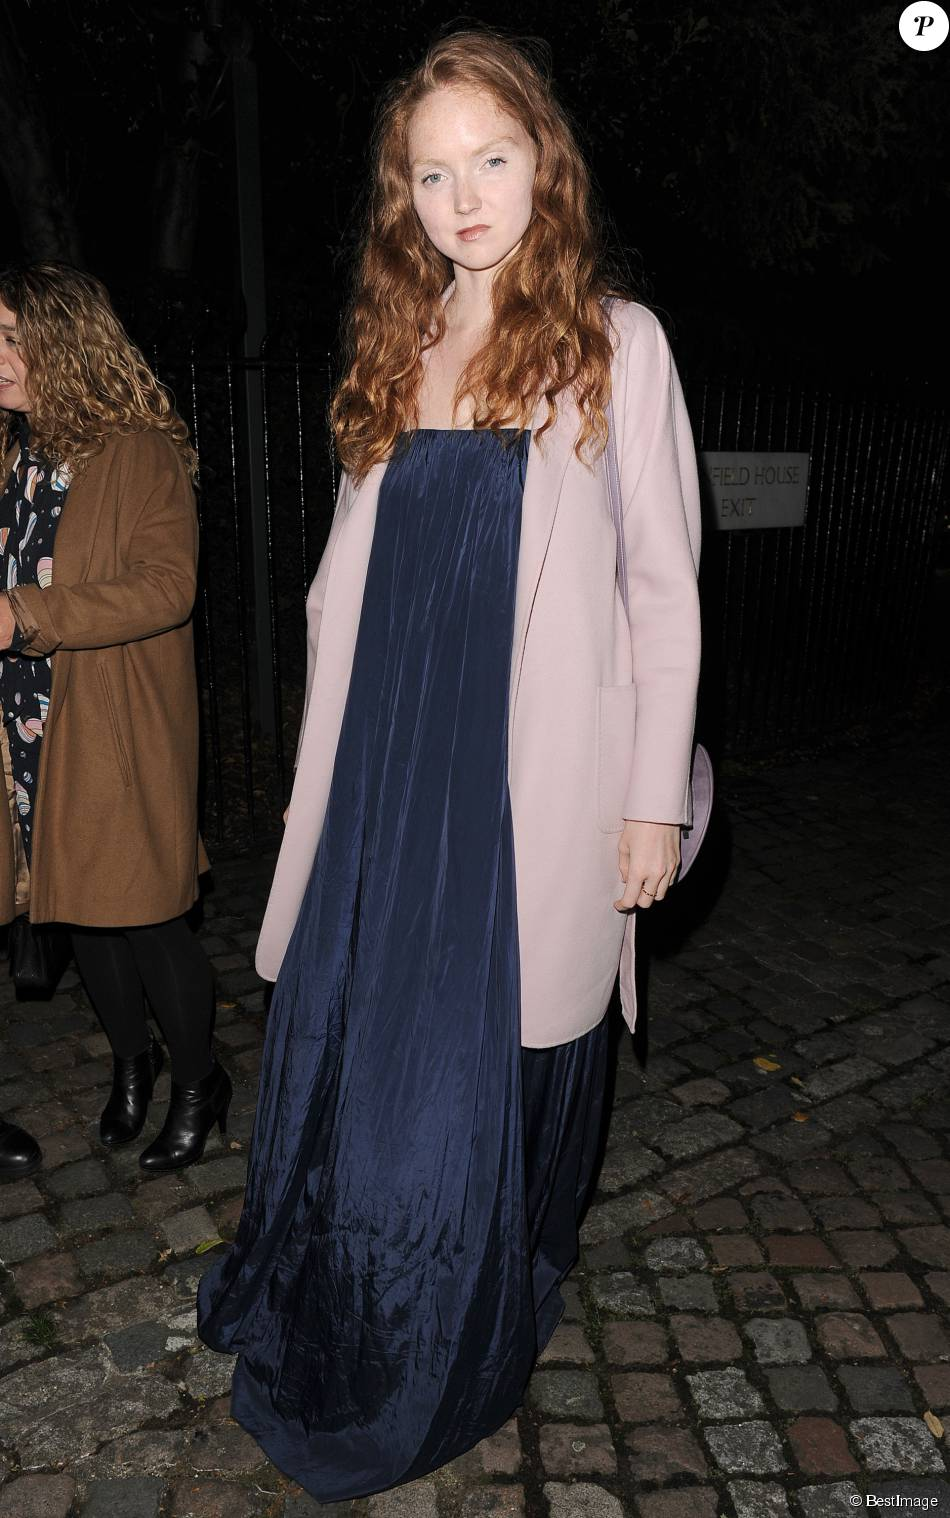 Lily Cole à la soirée US Ambassador en association avec le magasine Vogue lors de la Fashion Week de Londres, le 18 septembre 2015.